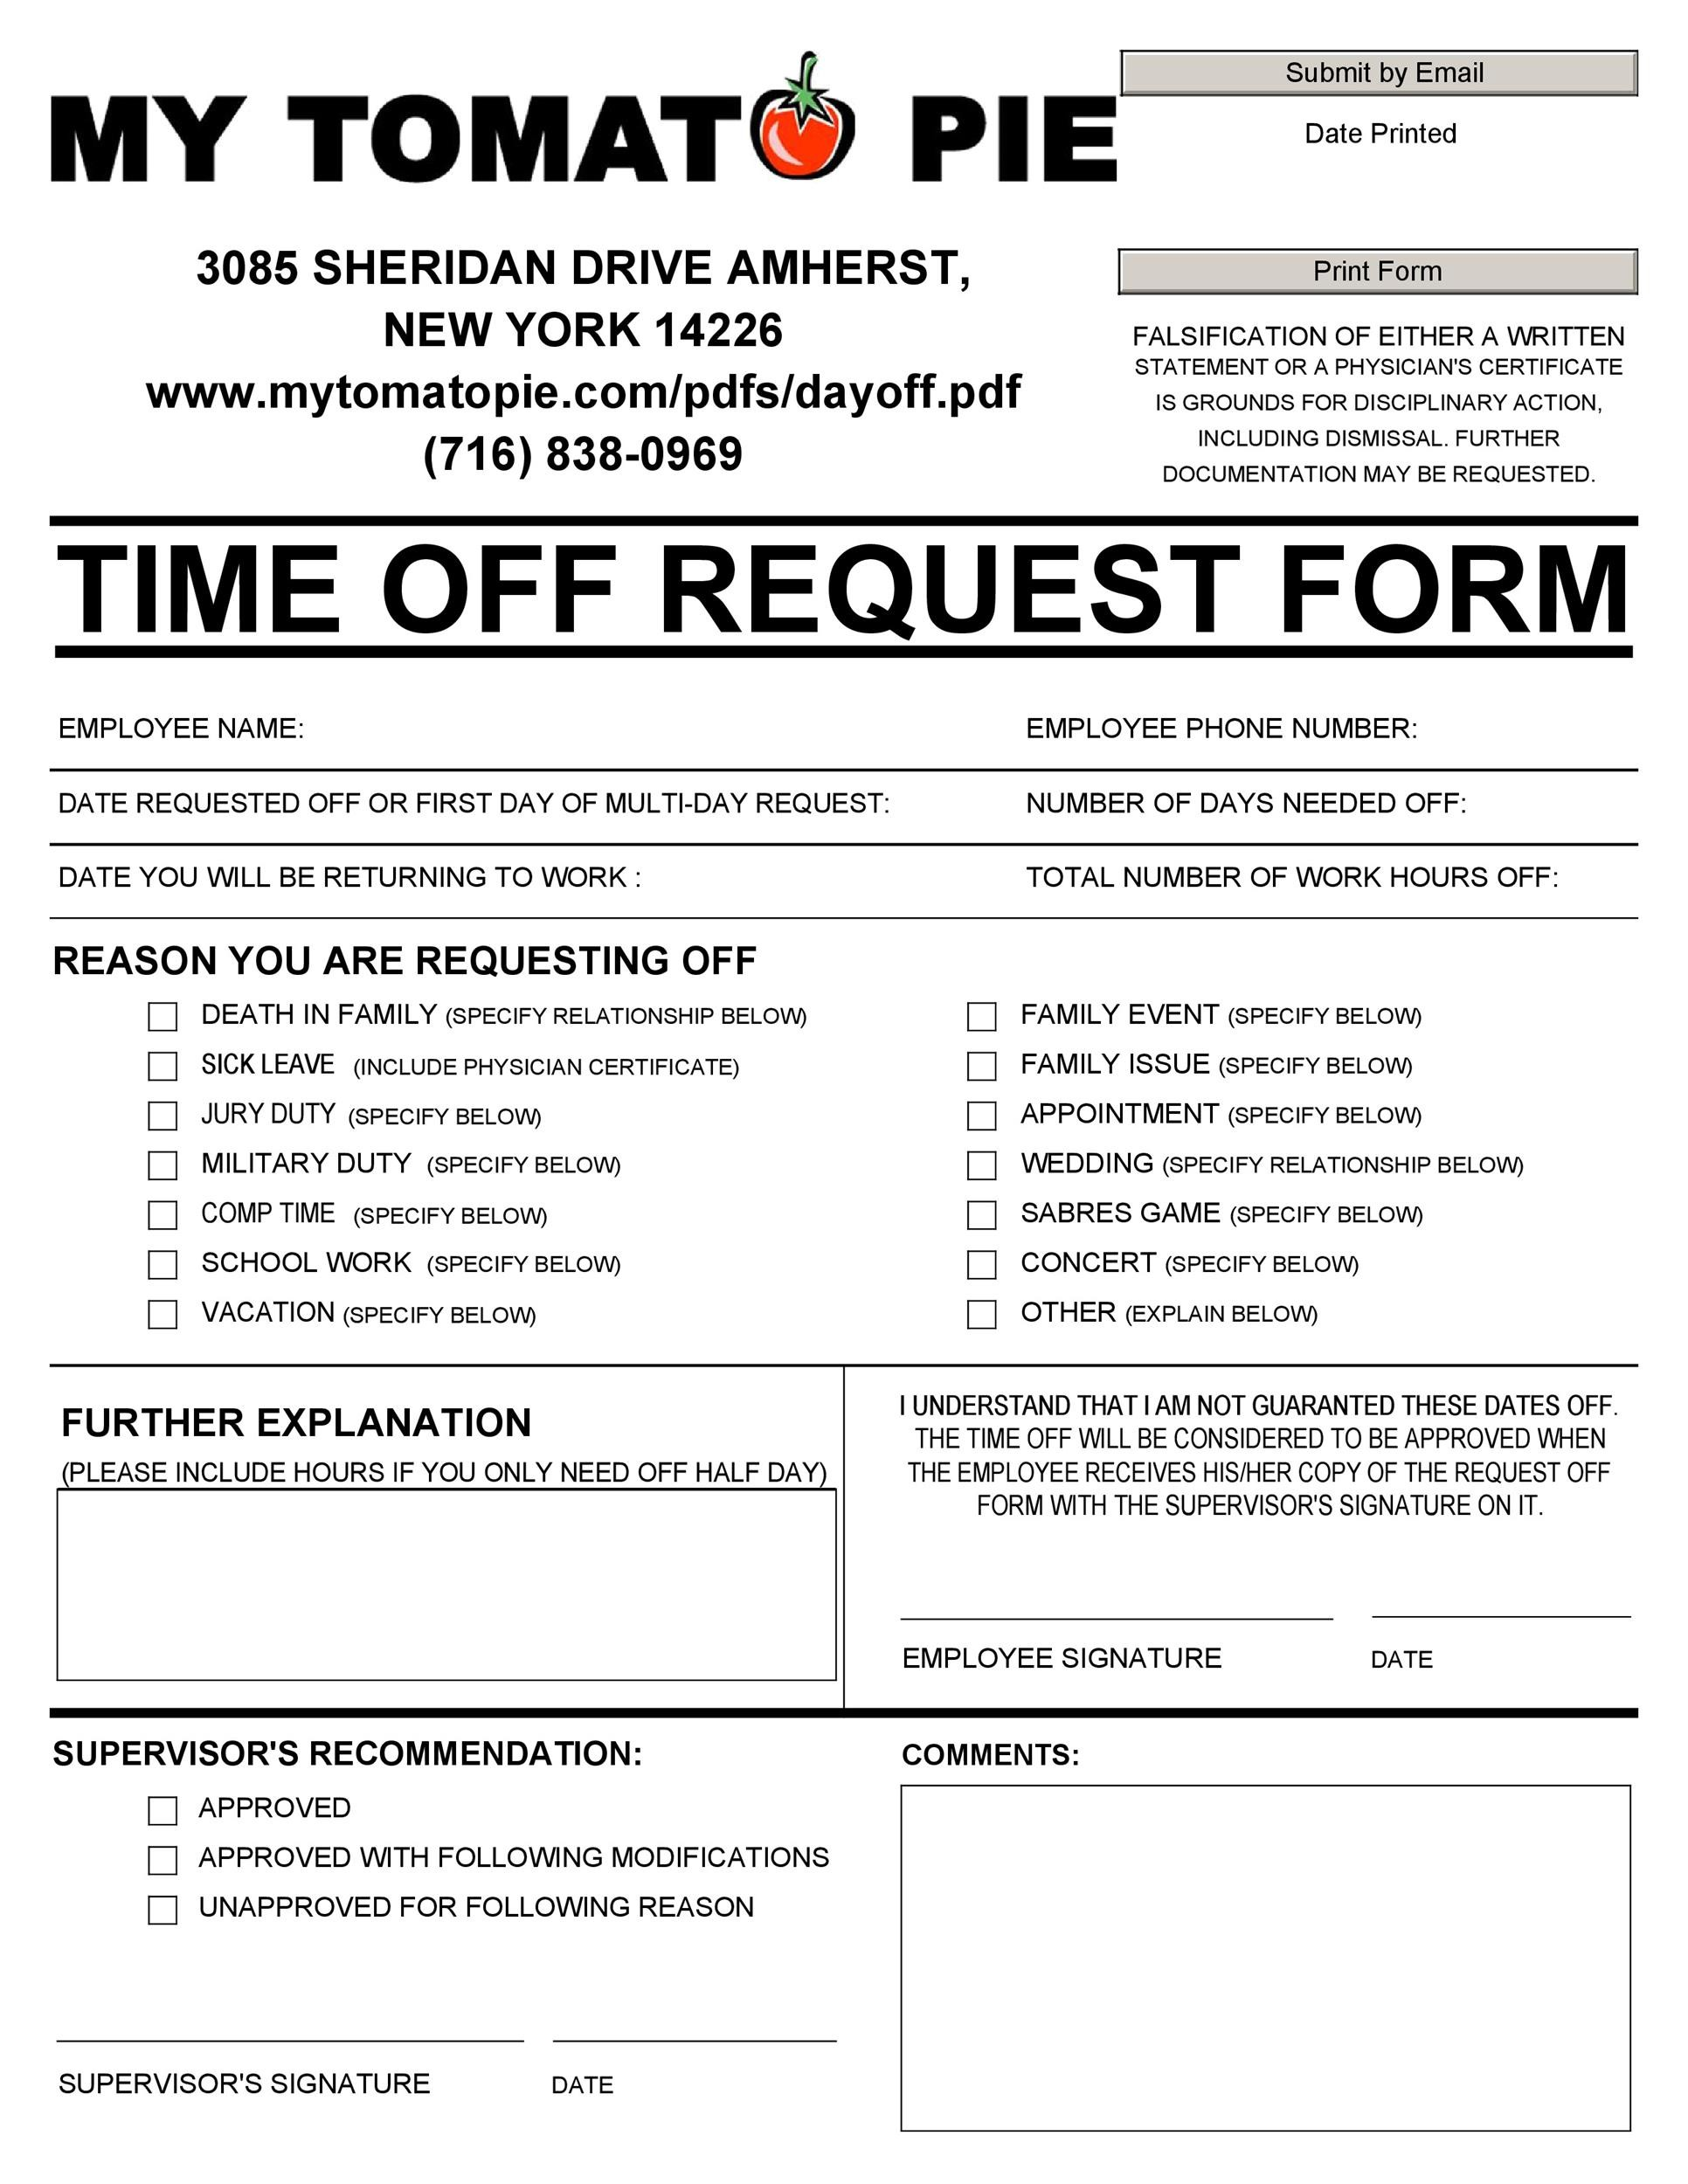 Free time off request form template 39